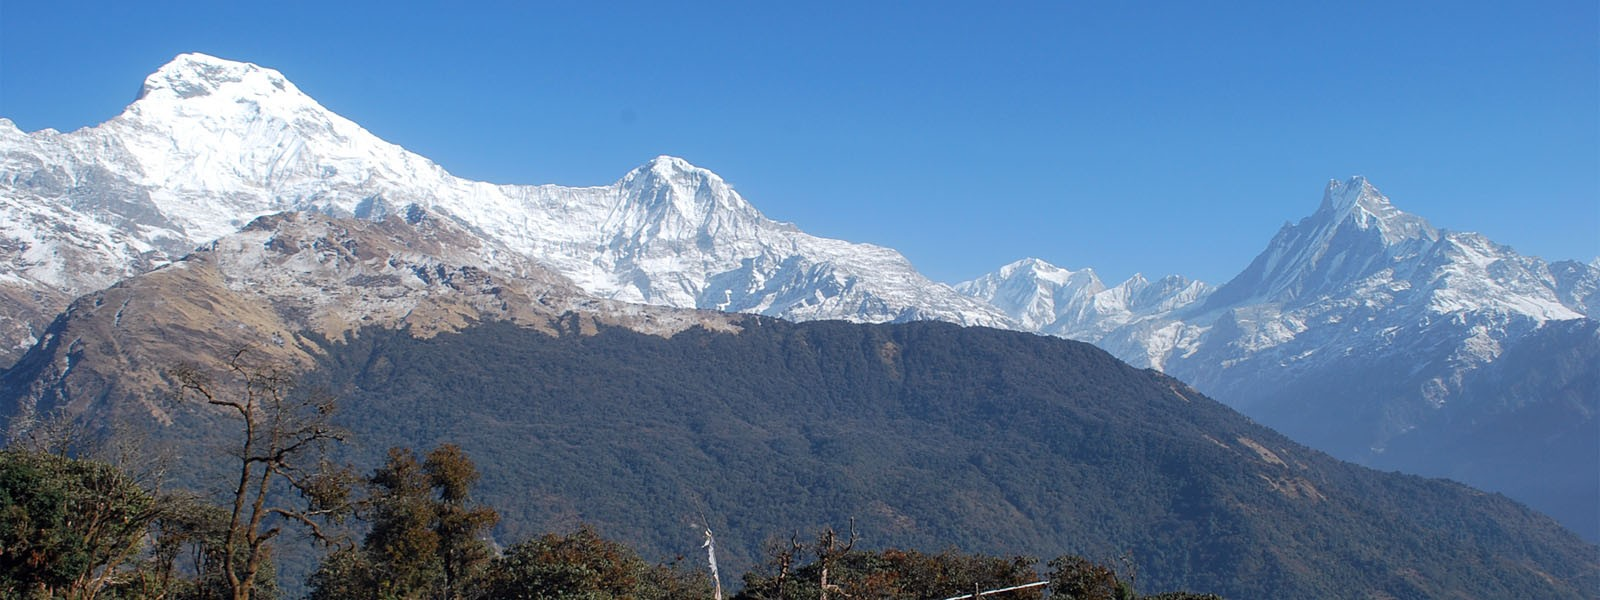 Annapurna South-Hiunchuli and Machhapuchhre